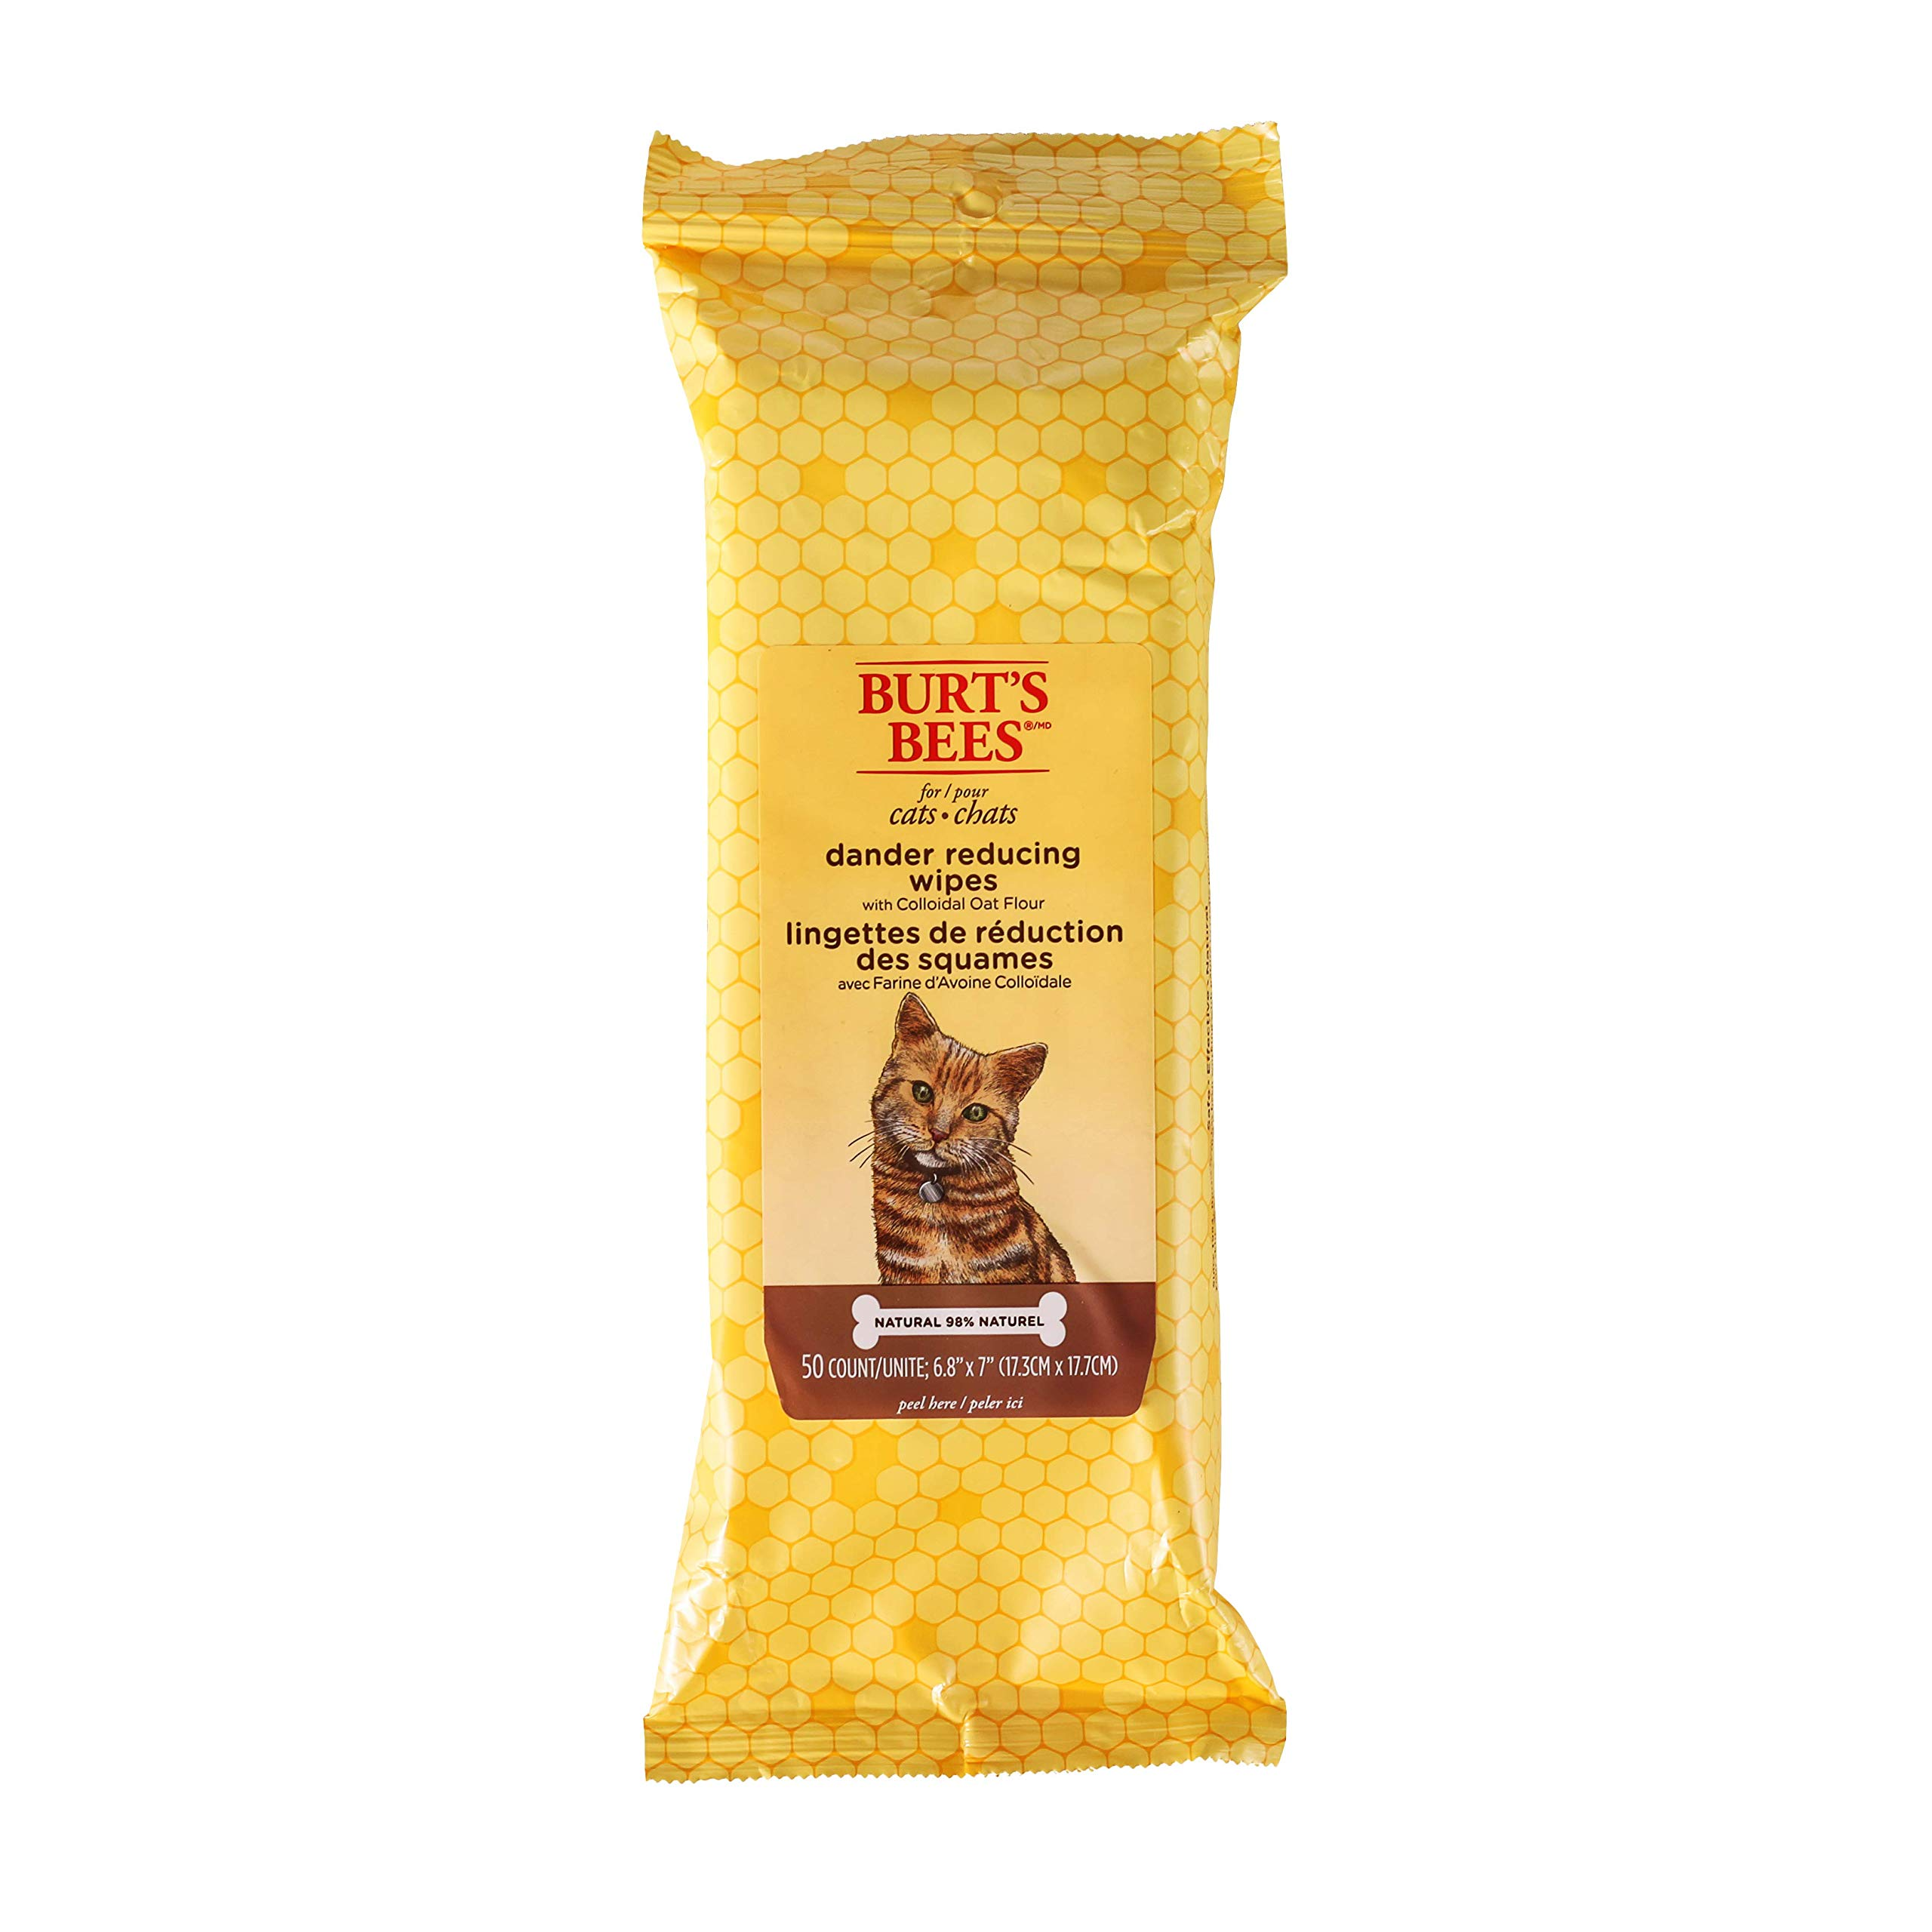 Burt's Bees For Cats Natural Dander Reducing Wipes | Kitten and Cat Wipes For Grooming, 50 Count by Burt's Bees for Pets